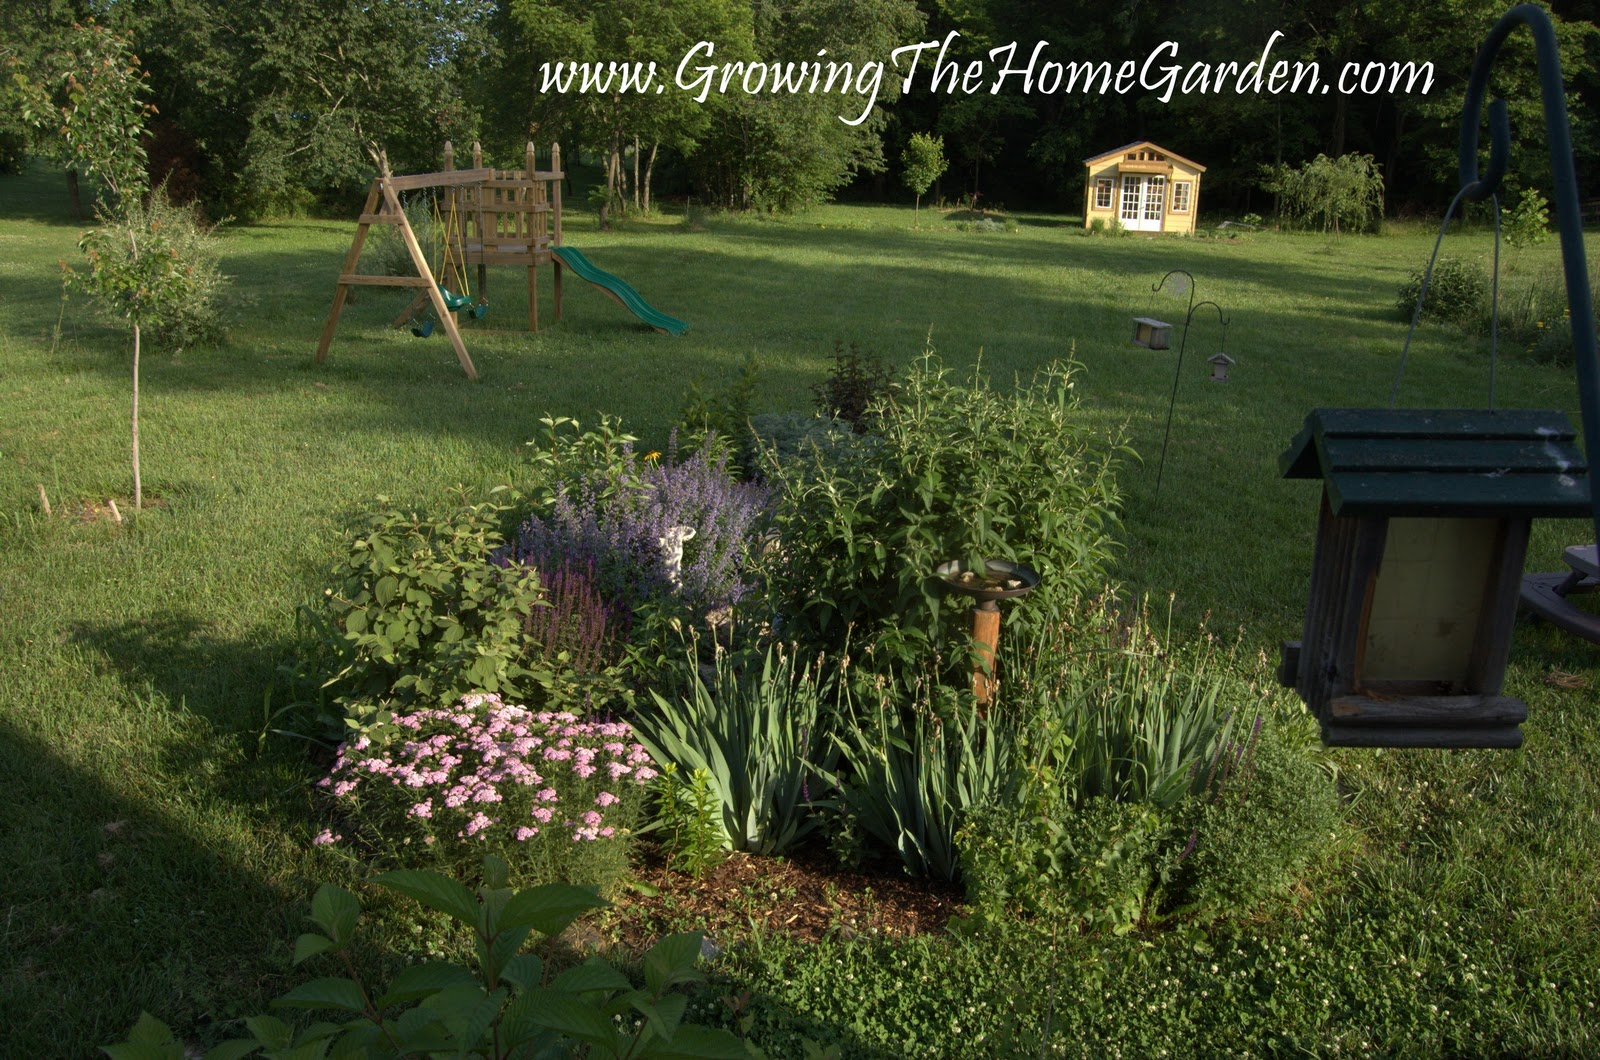 From This Perspective You Can See The Vegetable Garden And The Garden Shed.  In The Middle Is A Nice Little Kids Table The Girls Enjoy Playing With.